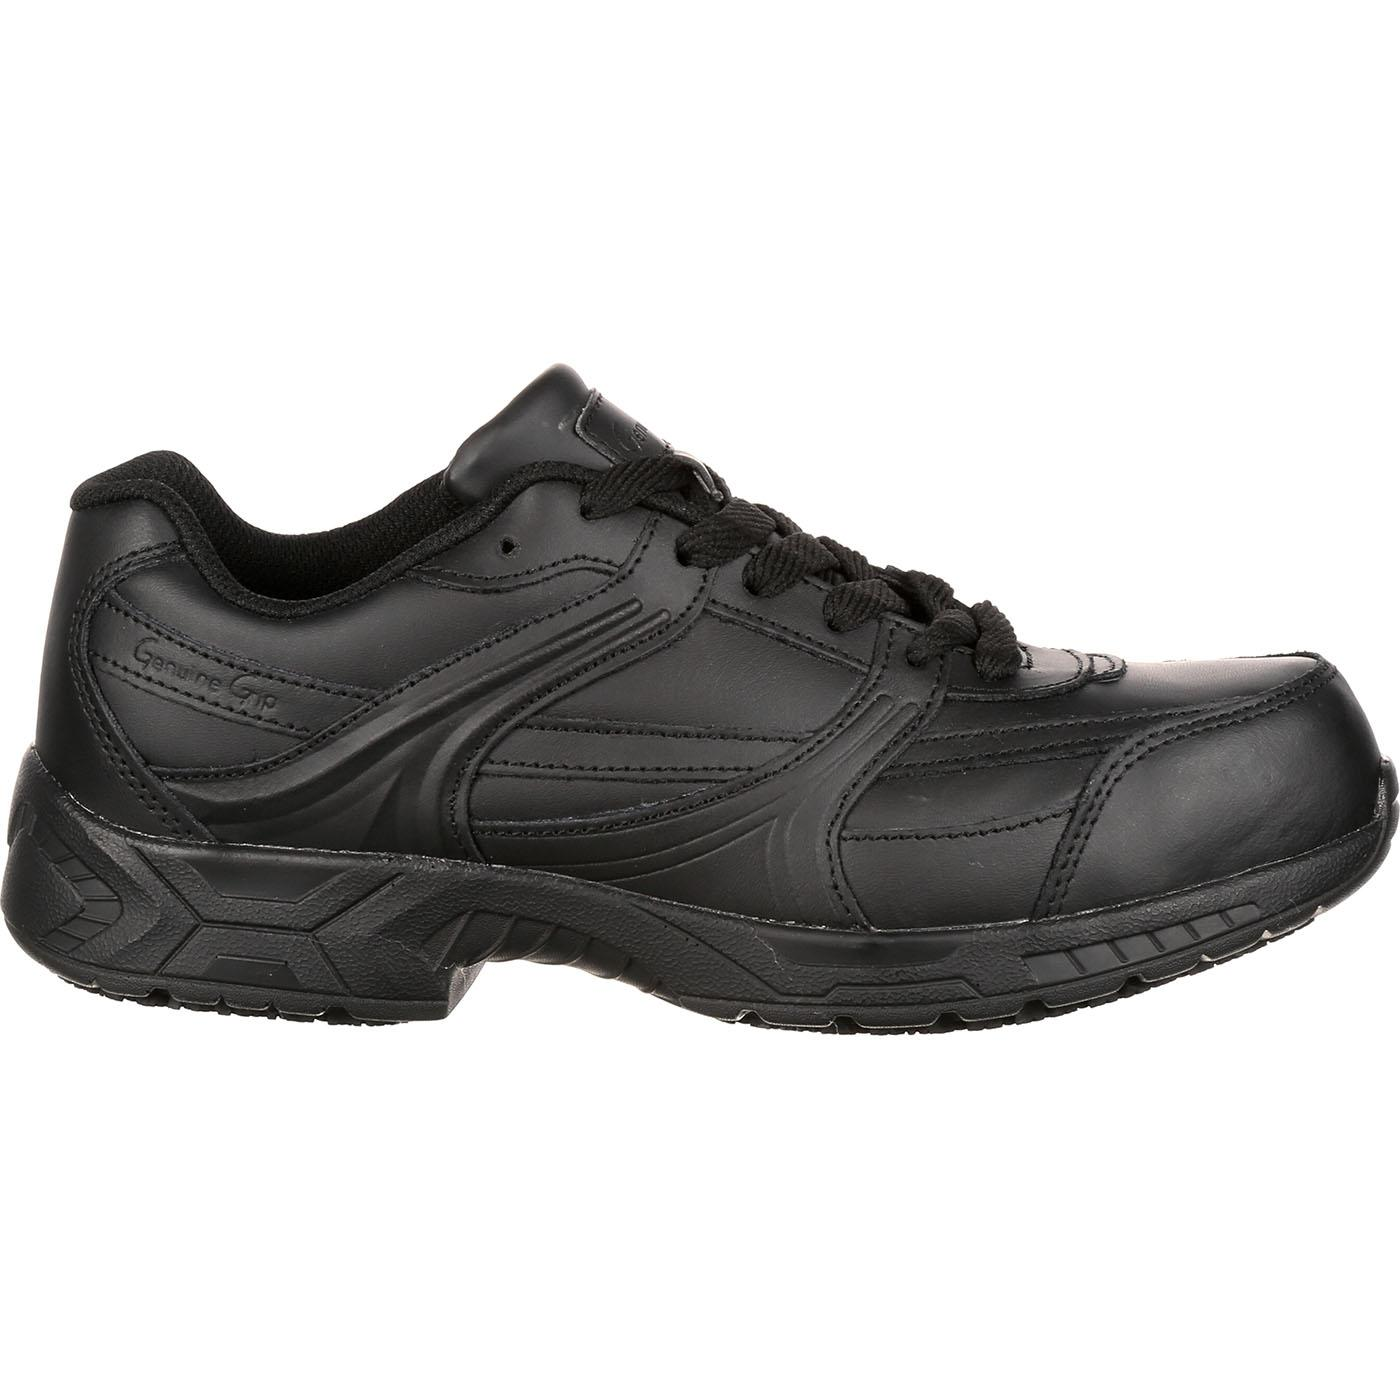 Genuine Grip Unisex Steel Toe Athletic Work Shoe af5cc3085